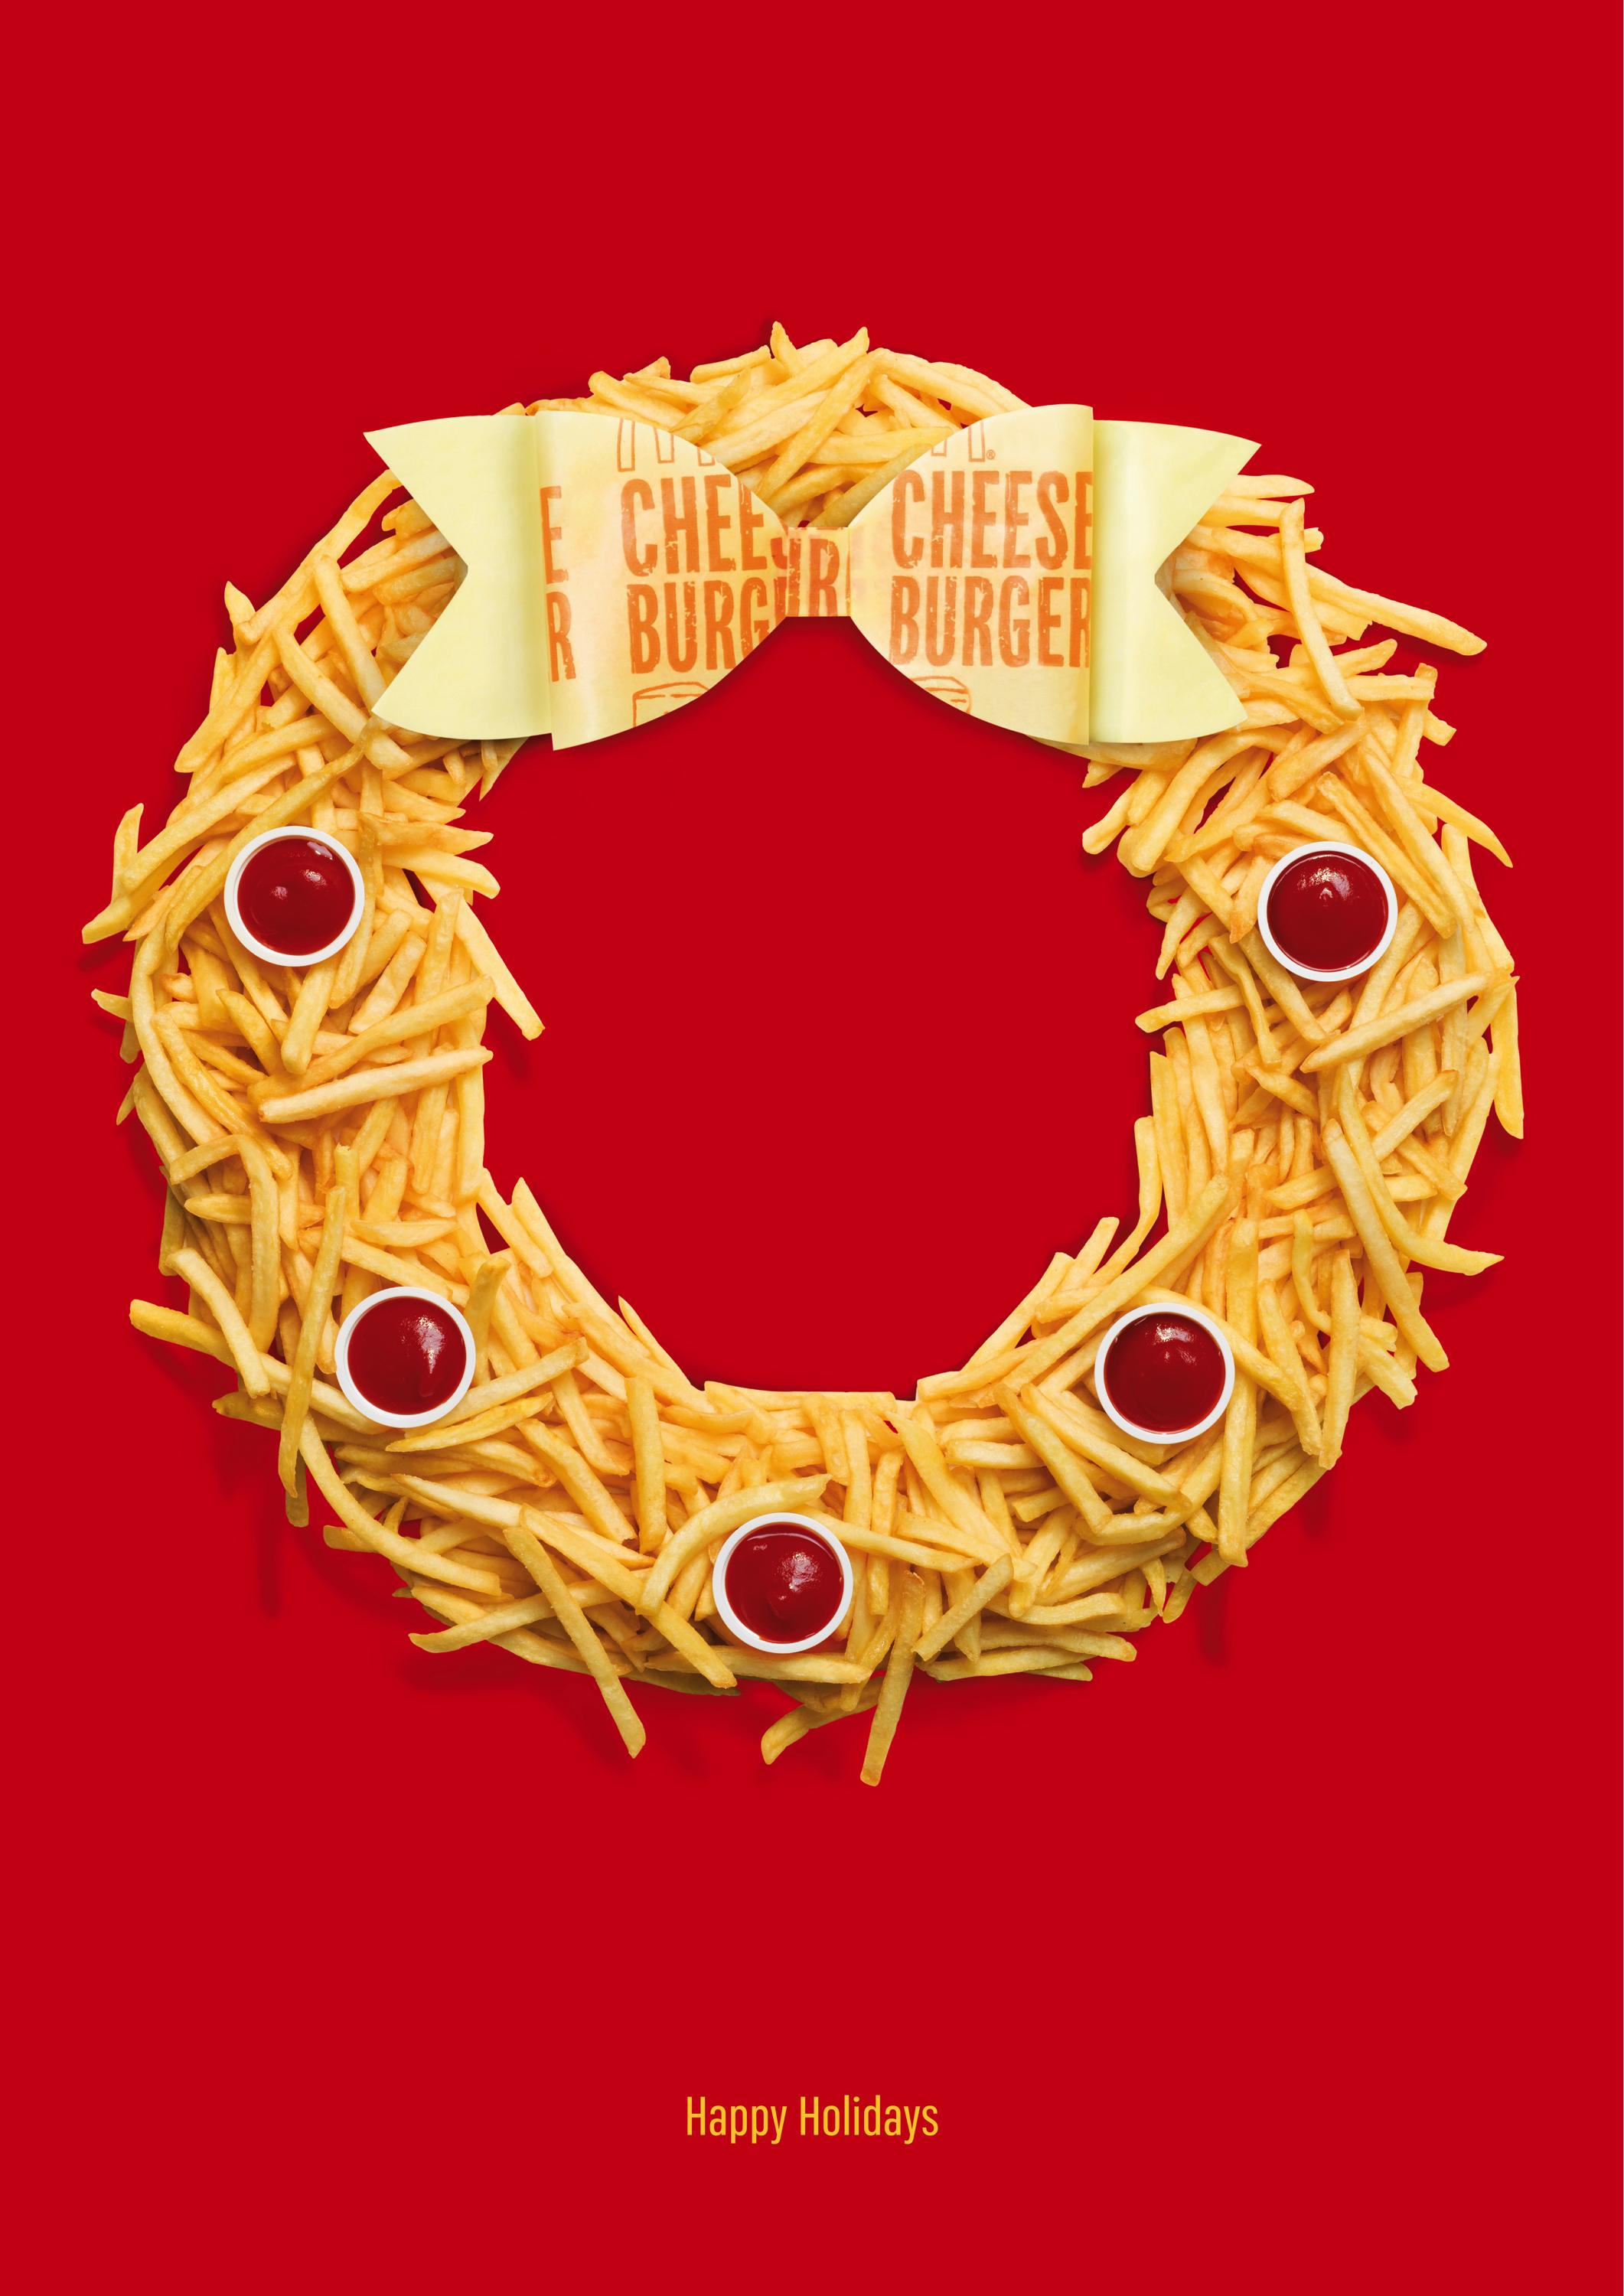 McDonald's Print Advert By Leo Burnett: Wreath | Ads of the World™